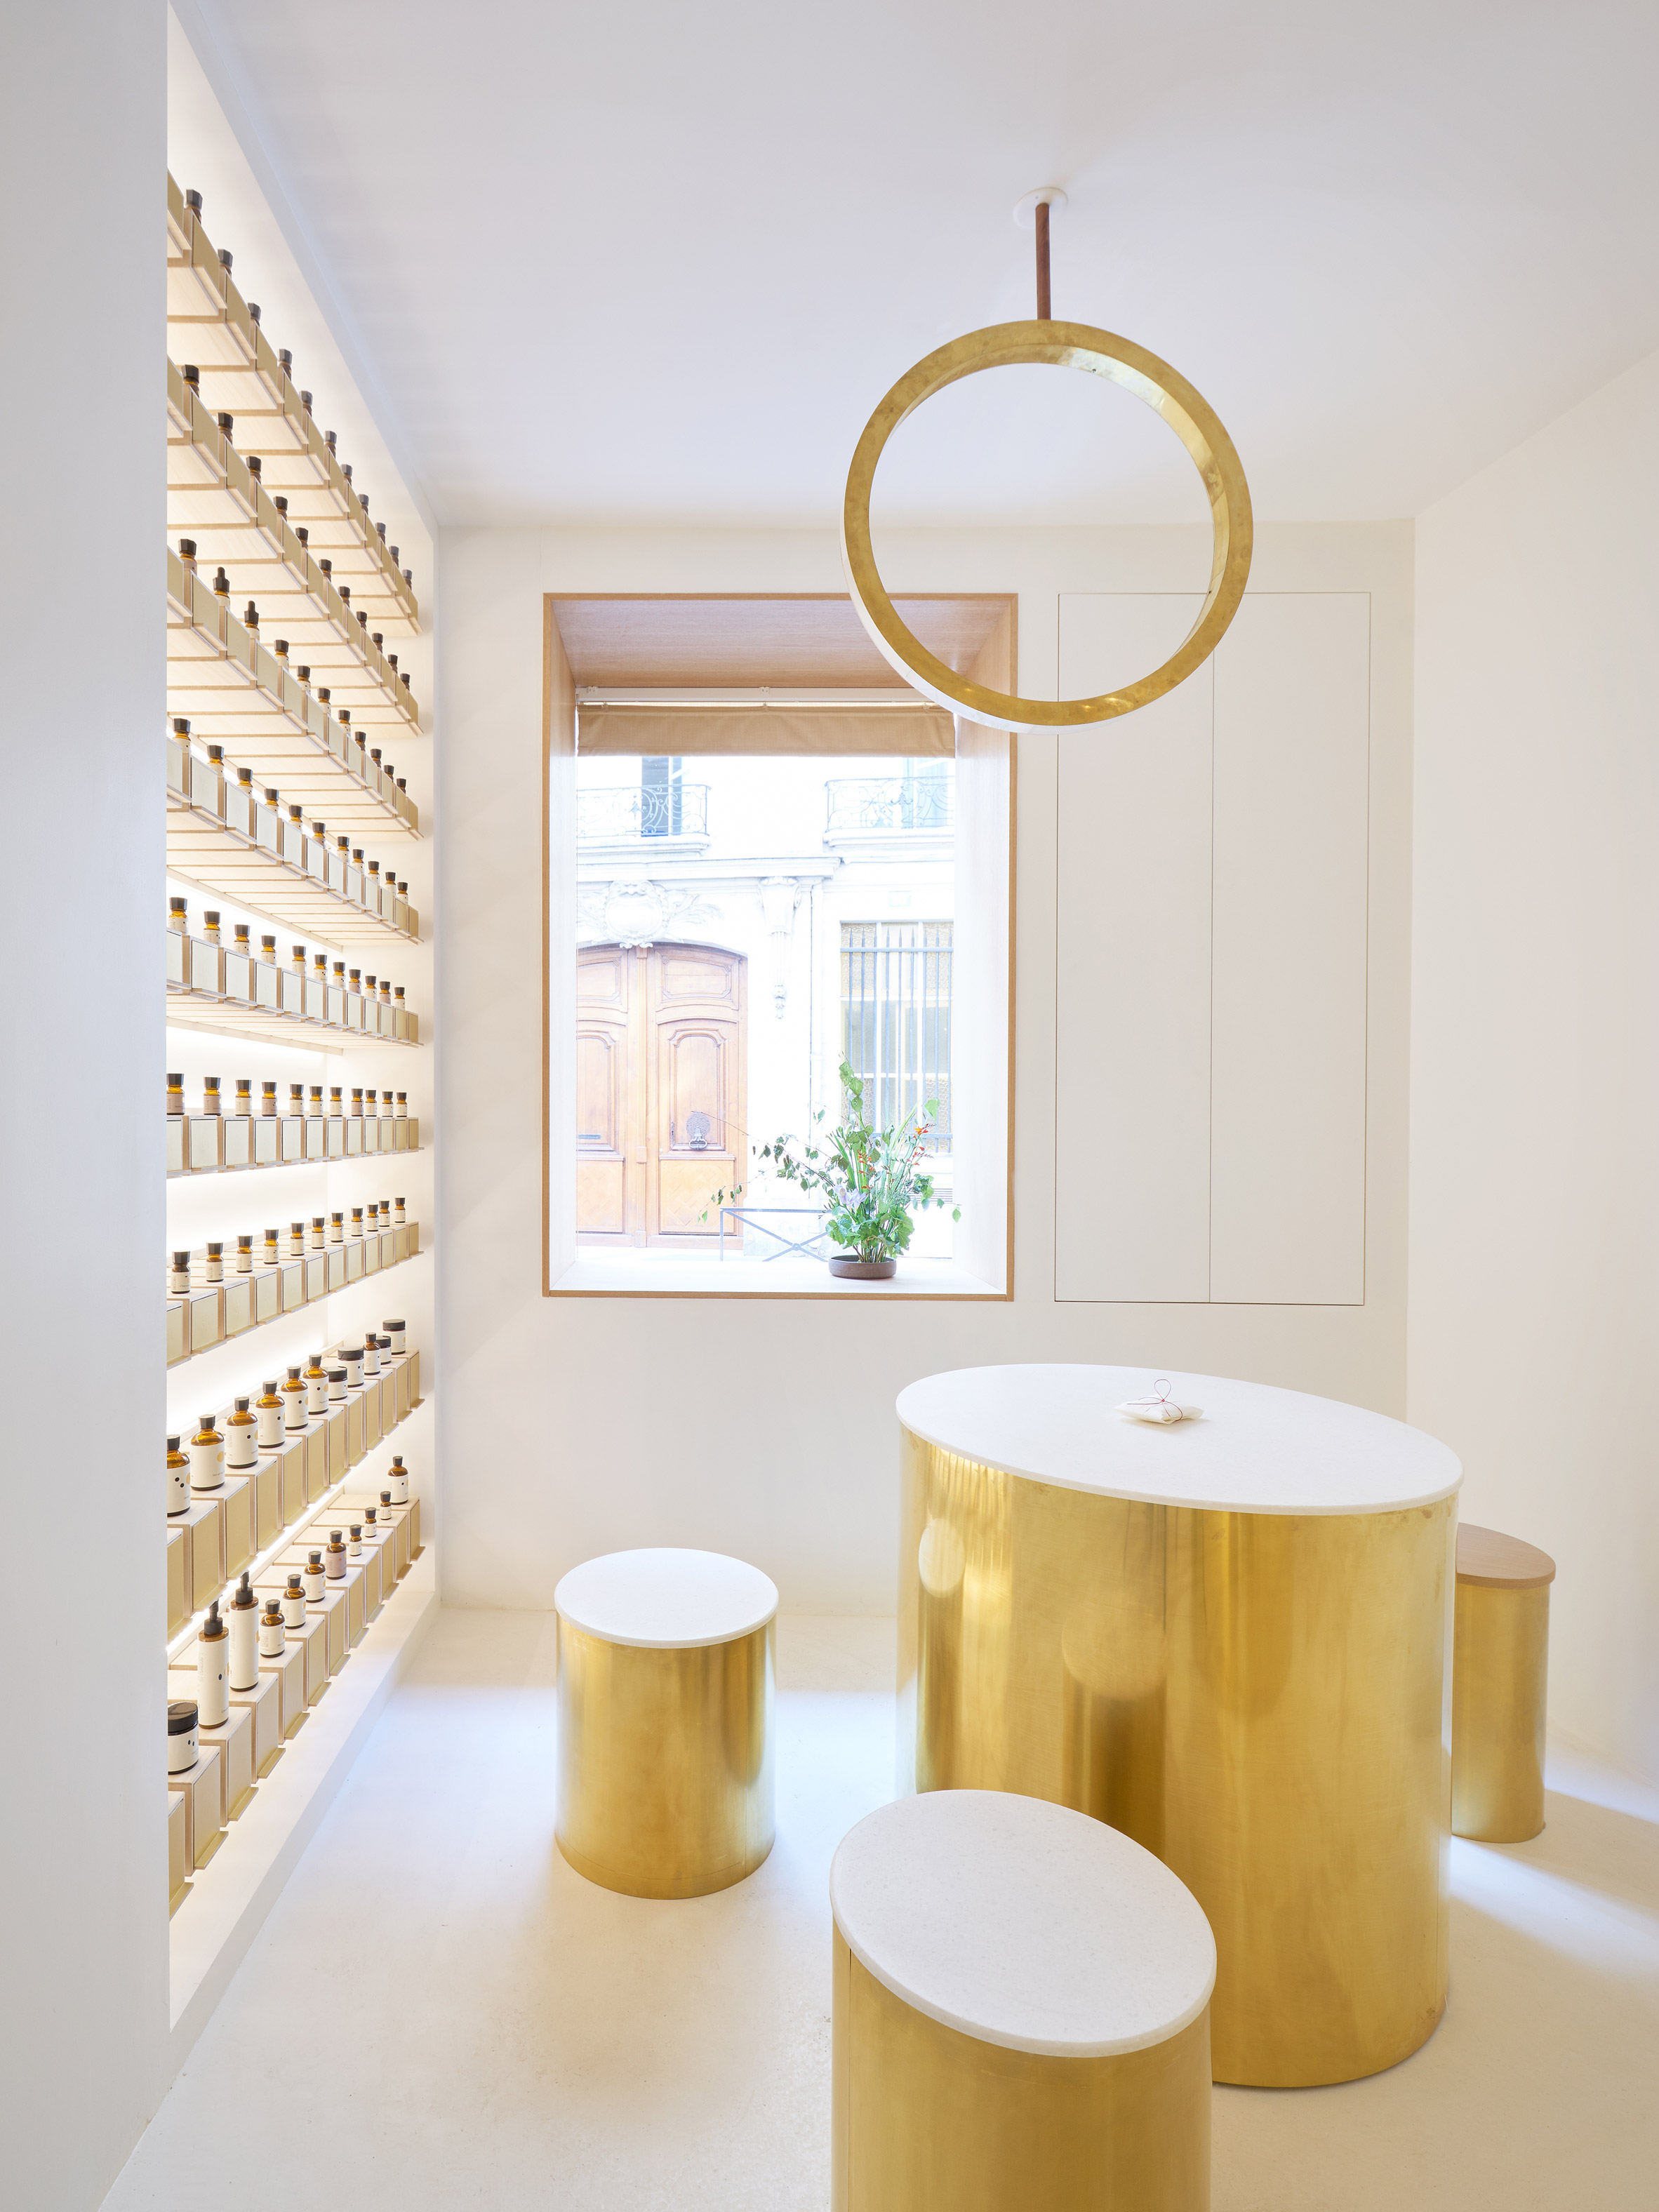 Interiors of En skincare store, designed by Archiee